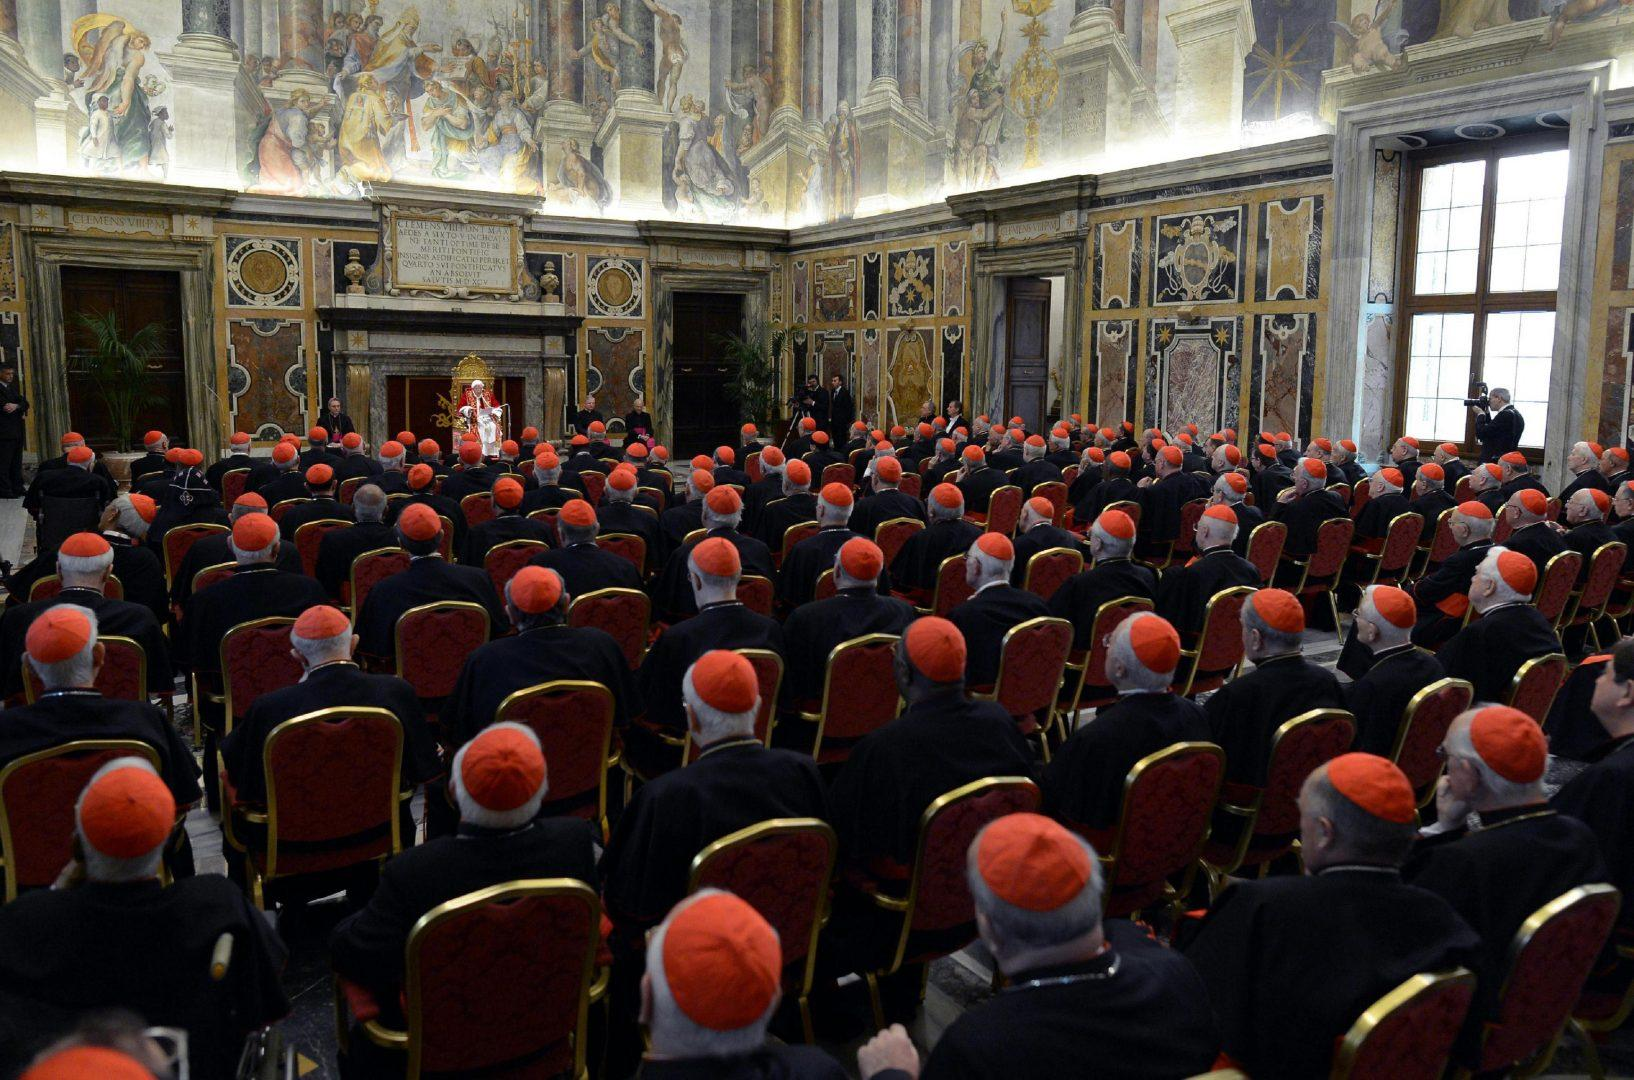 Pope Benedict XVI pledged obedience to his successor at a meeting of cardinals on his last day as pontiff on Thursday, February 28, 2013, in Vatican City. ''Among you is the future pope, to whom I promise my unconditional reverence and obedience,'' Benedict said. (ANSA/Zuma Press/MCT)